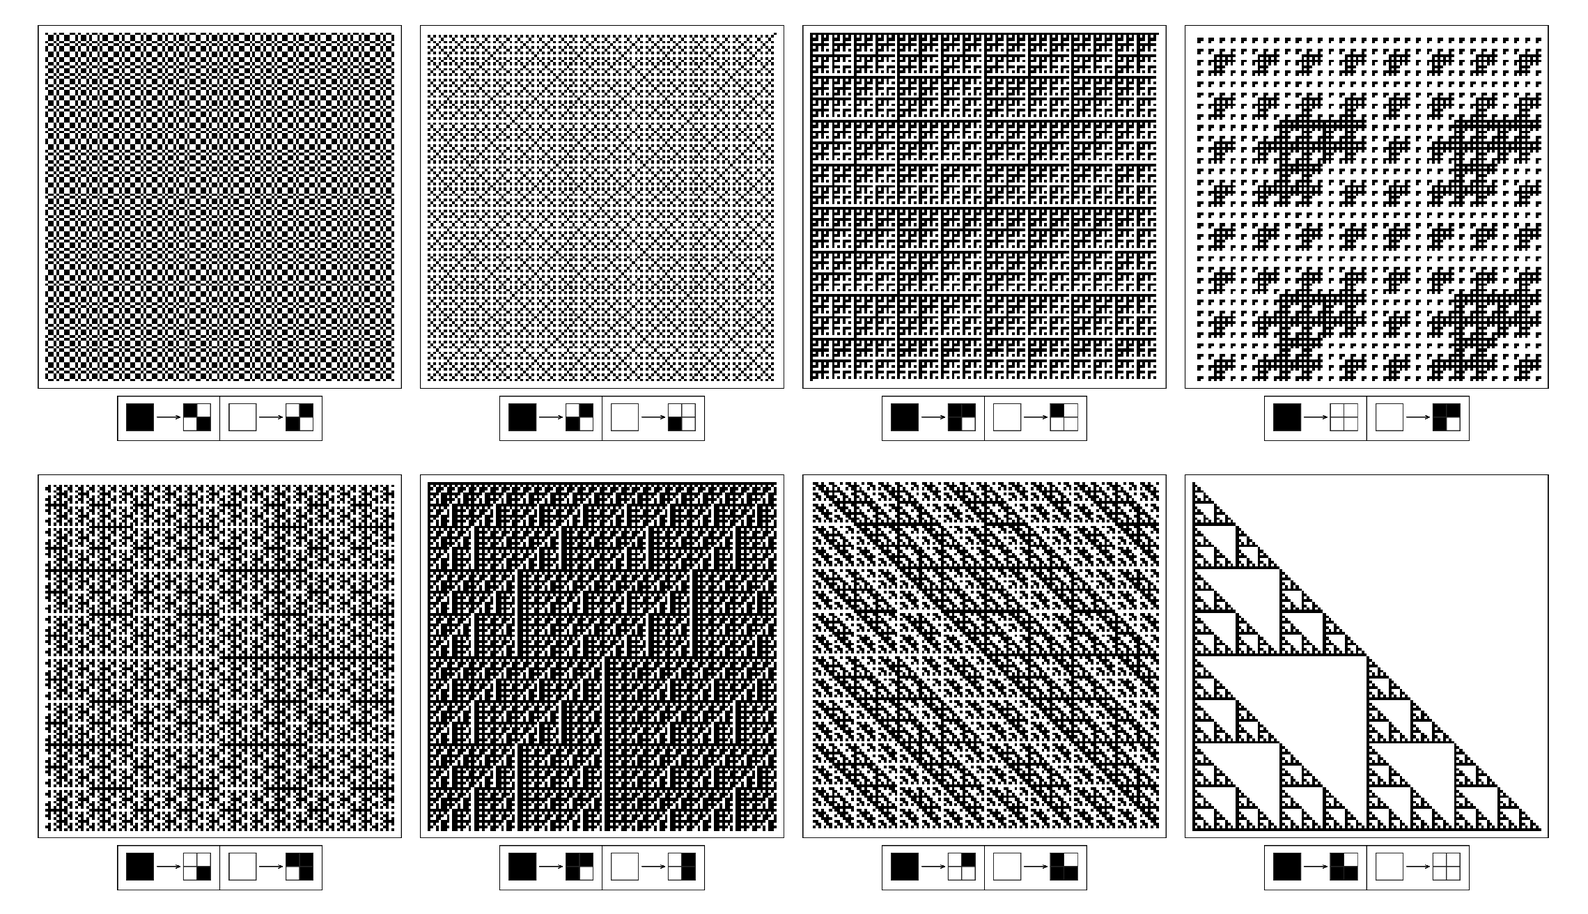 Nsted patterns created by following two-dimensional substitution rules